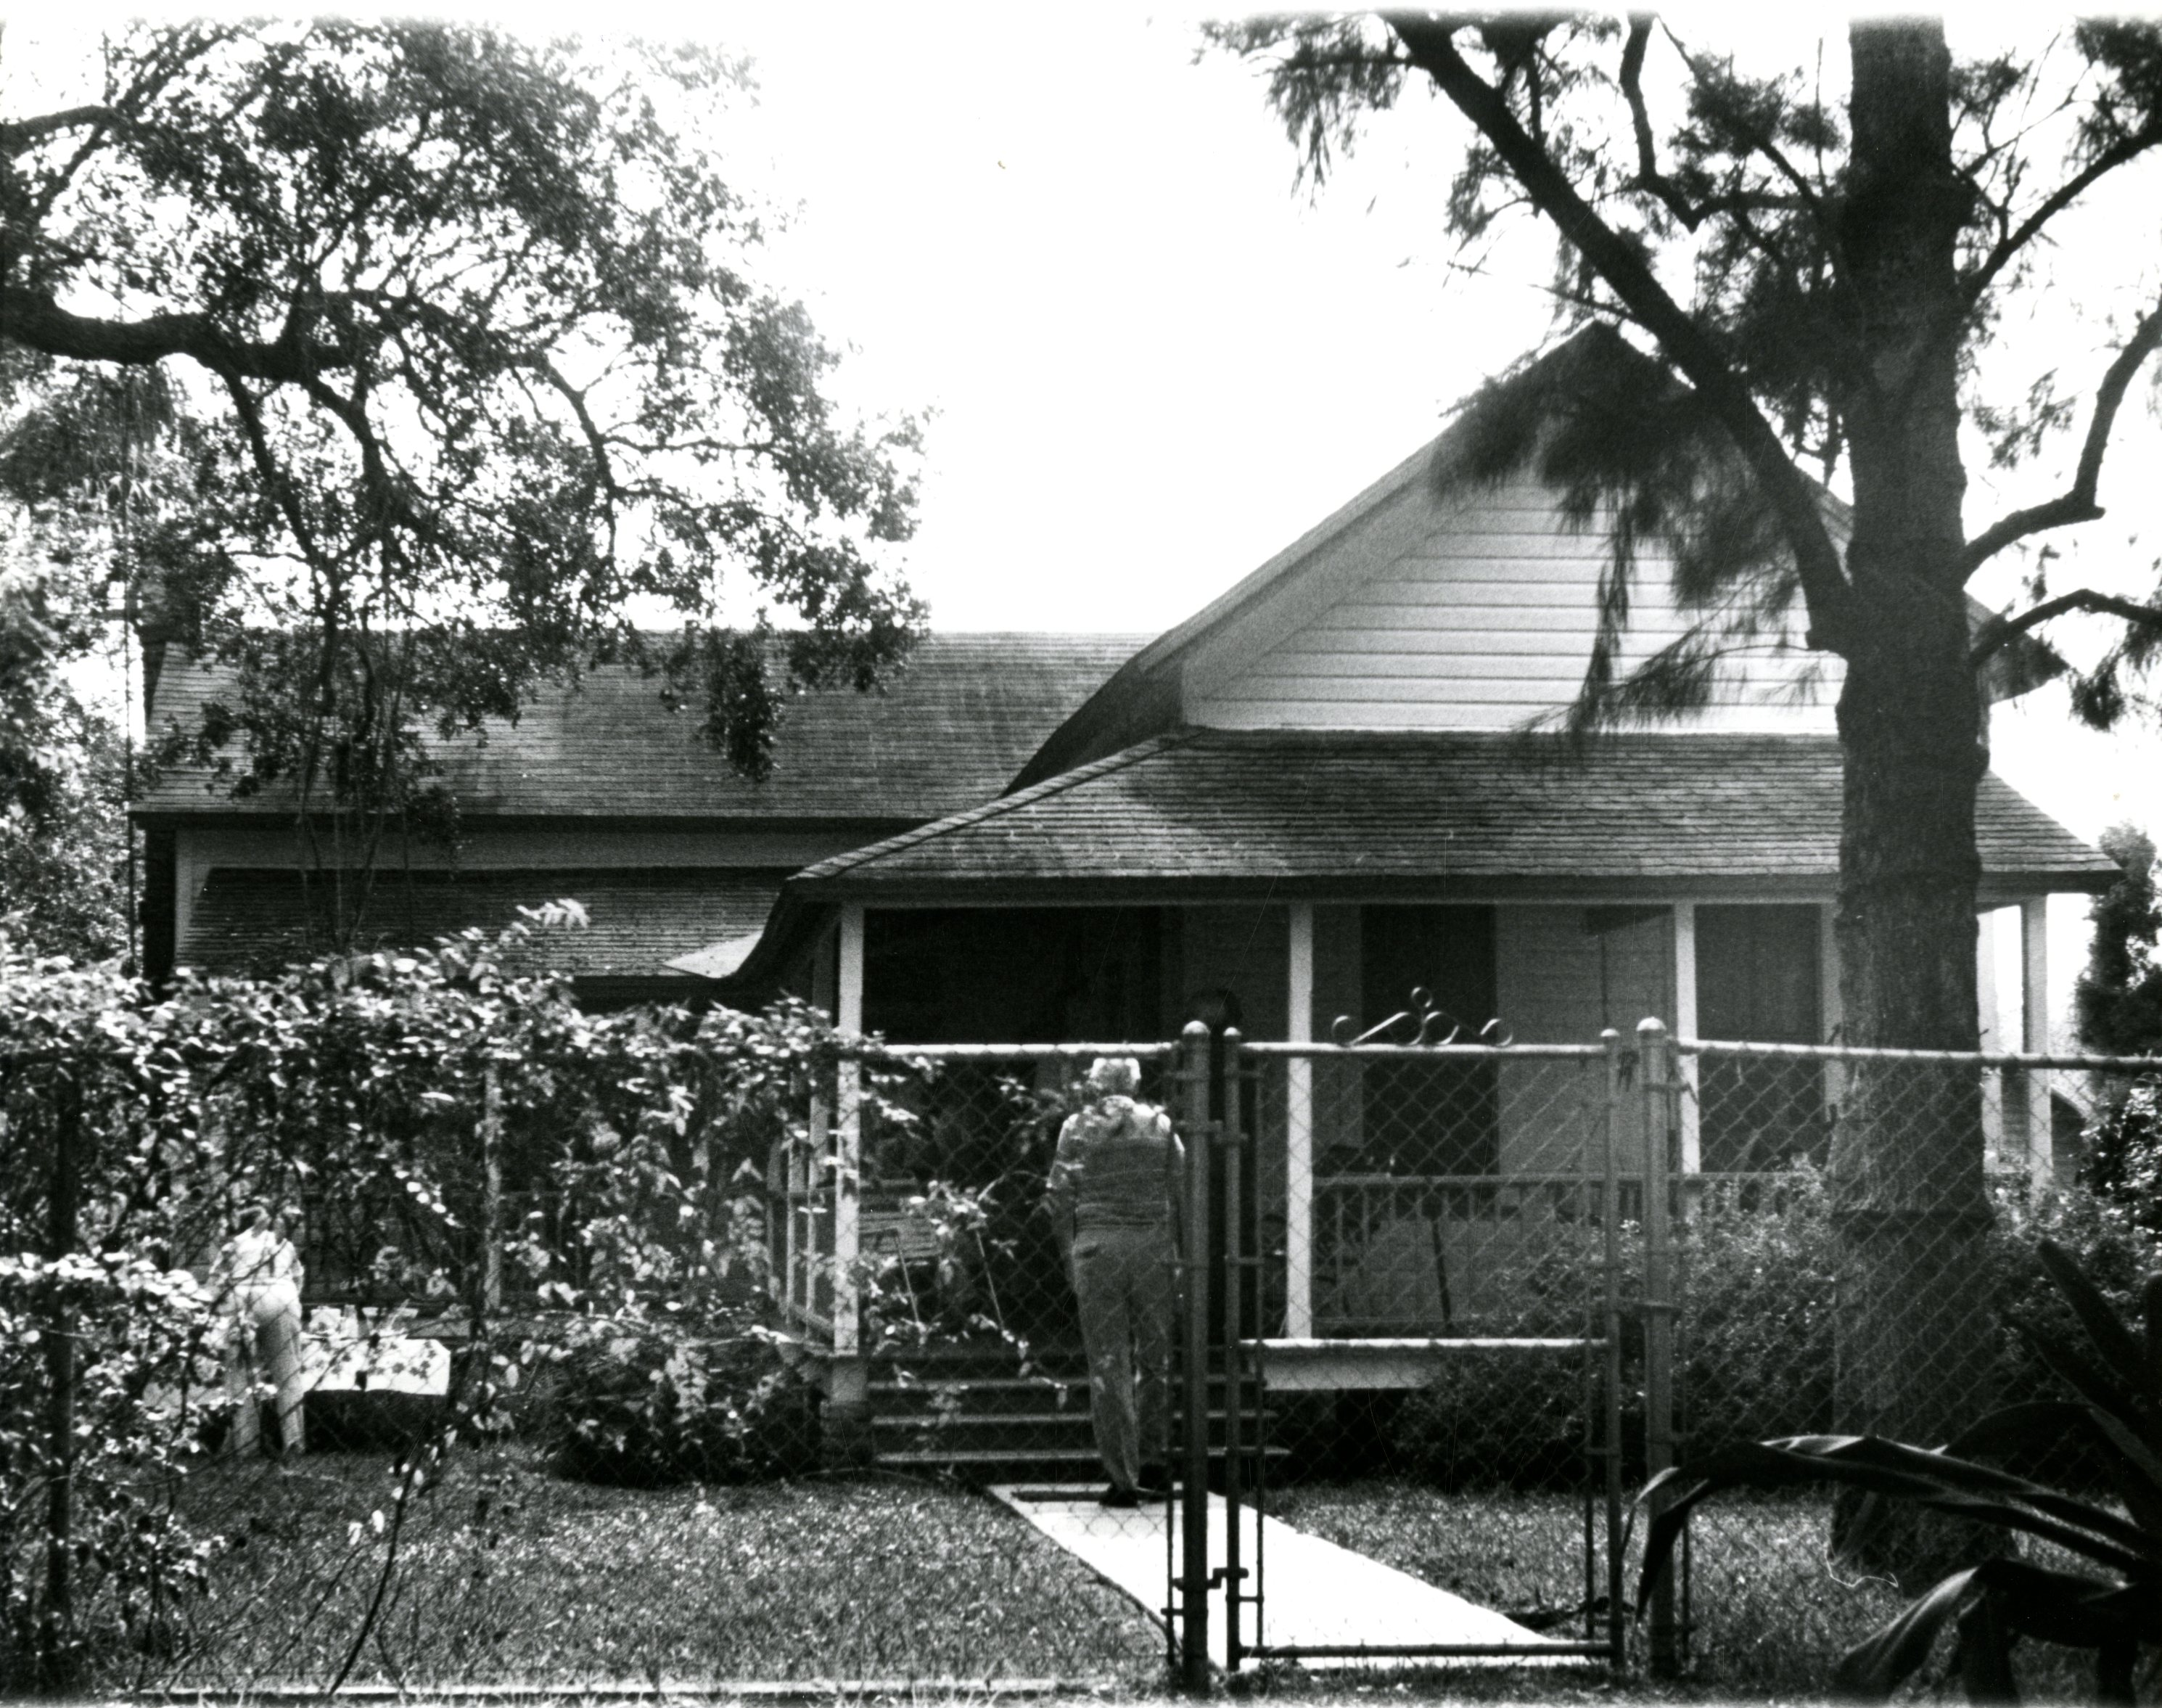 Daniel McMullen House, Largo, Florida, November 1985.